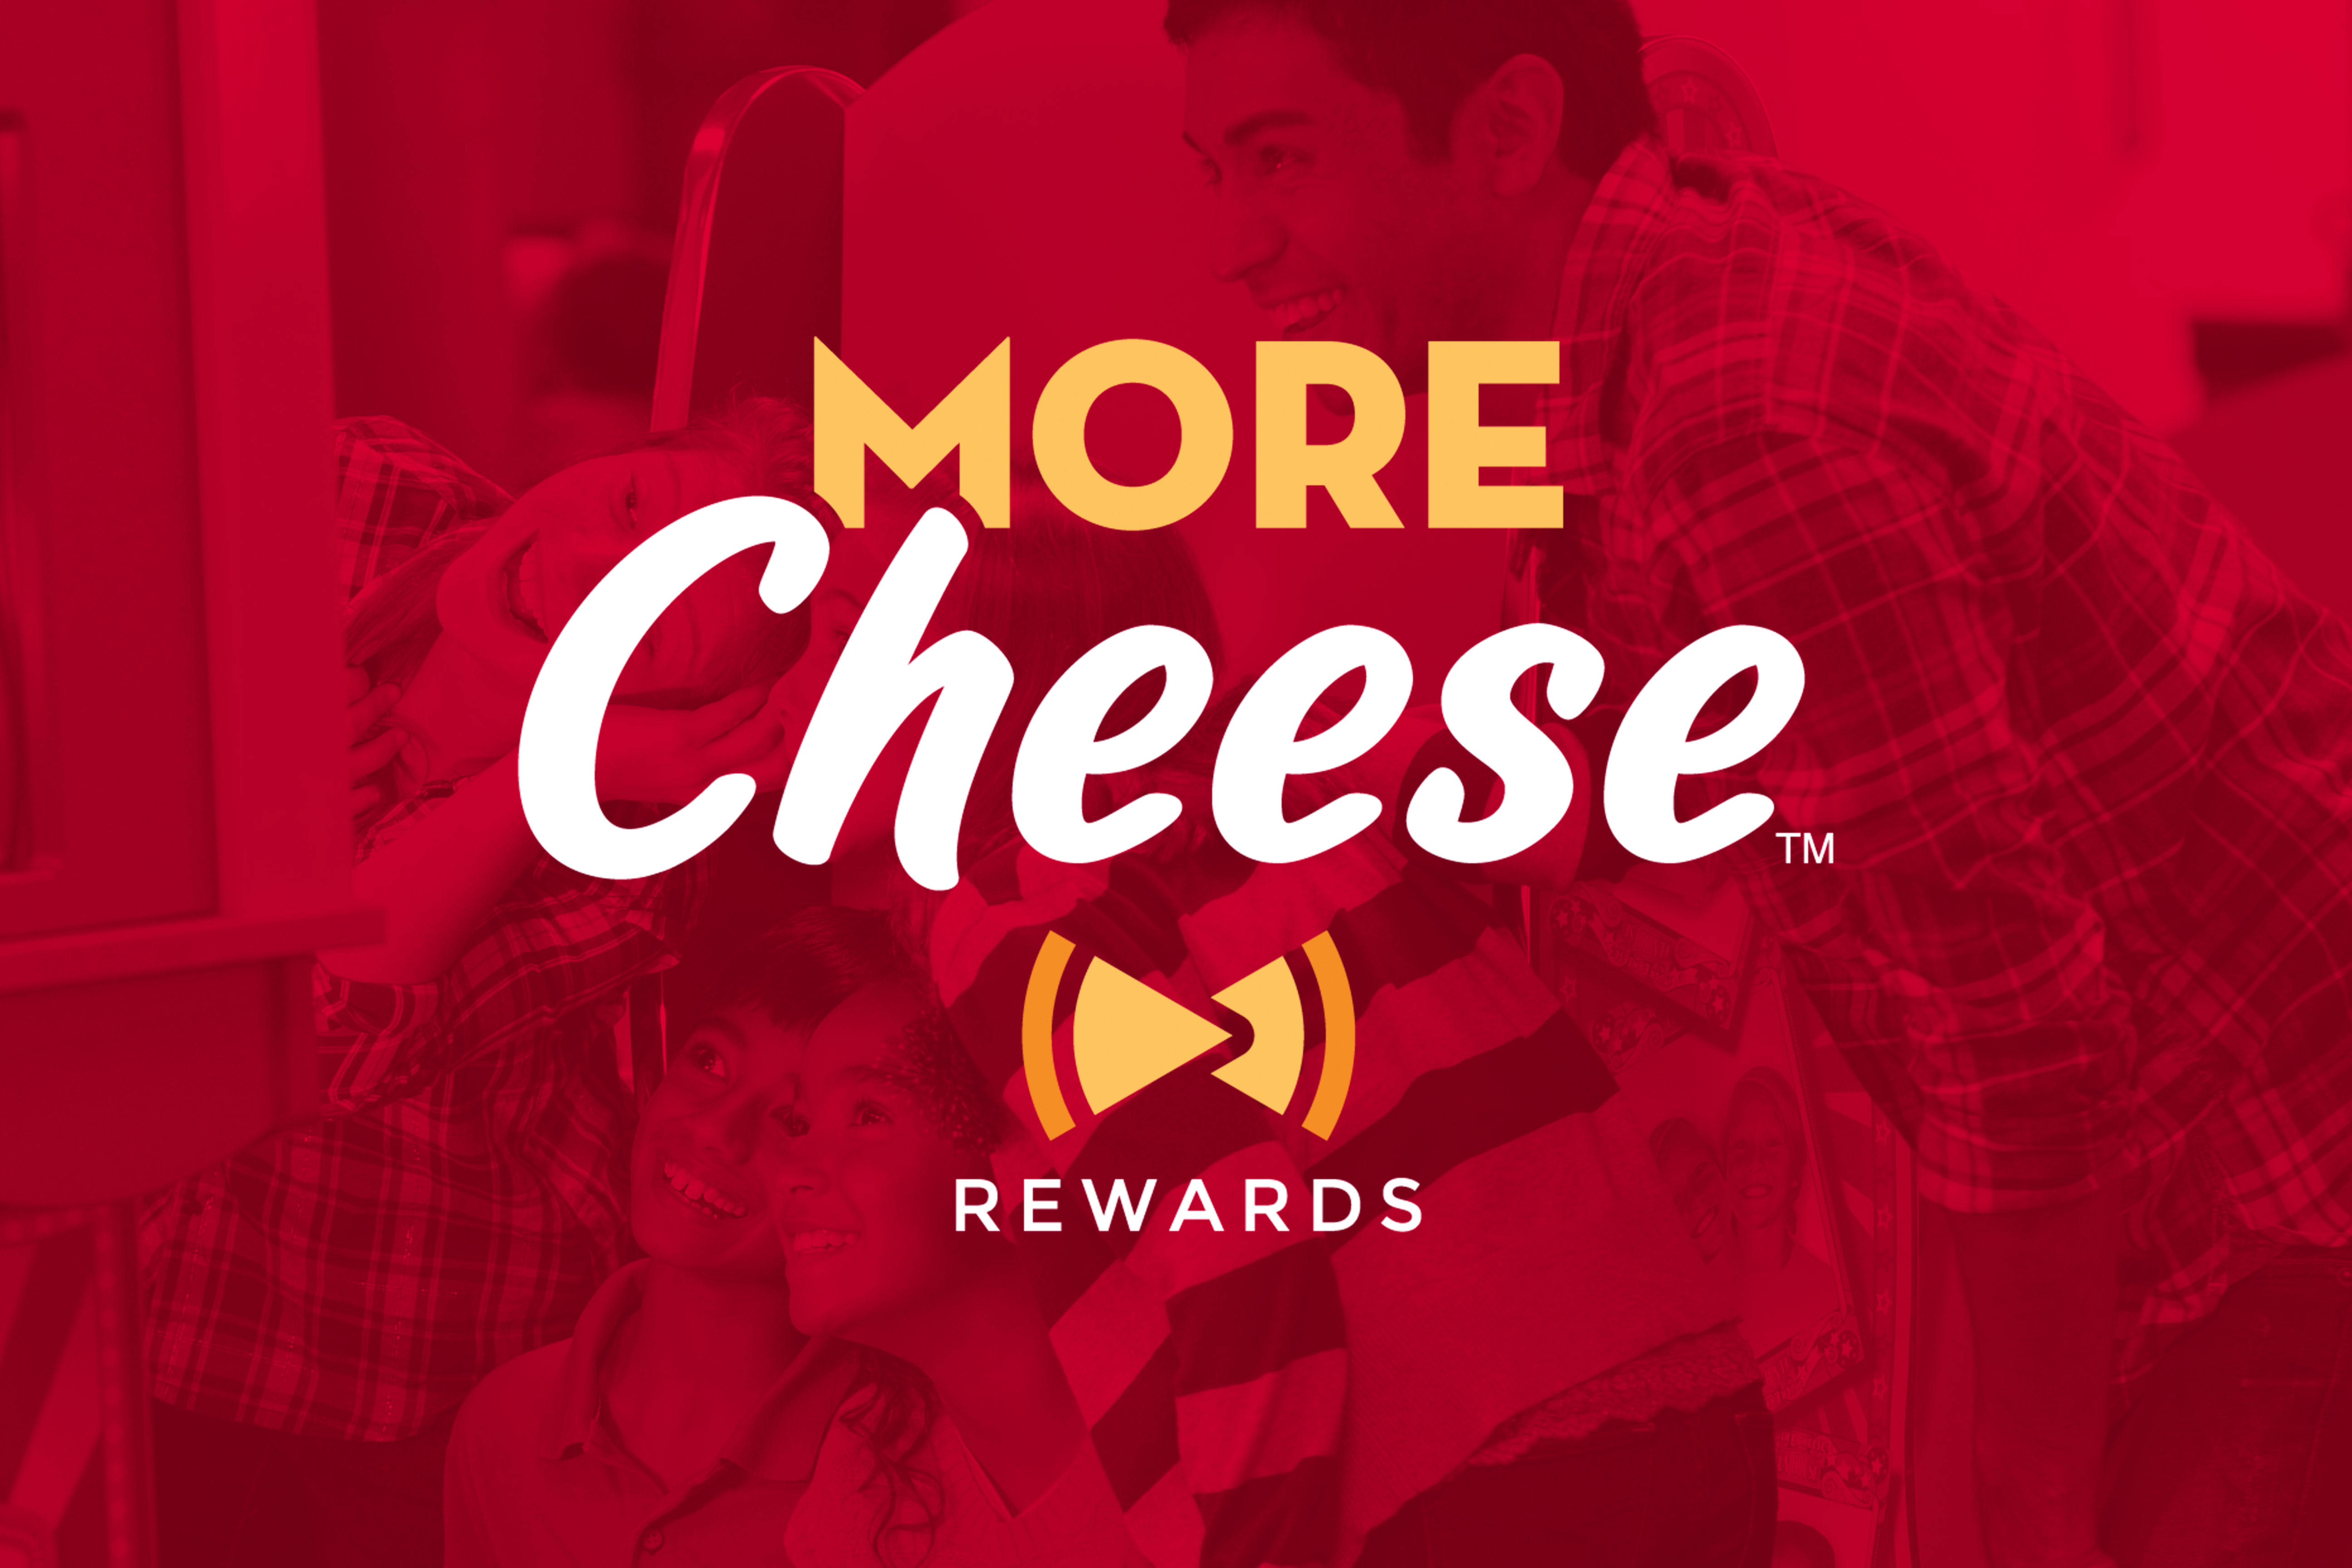 More cheese rewards text and logo